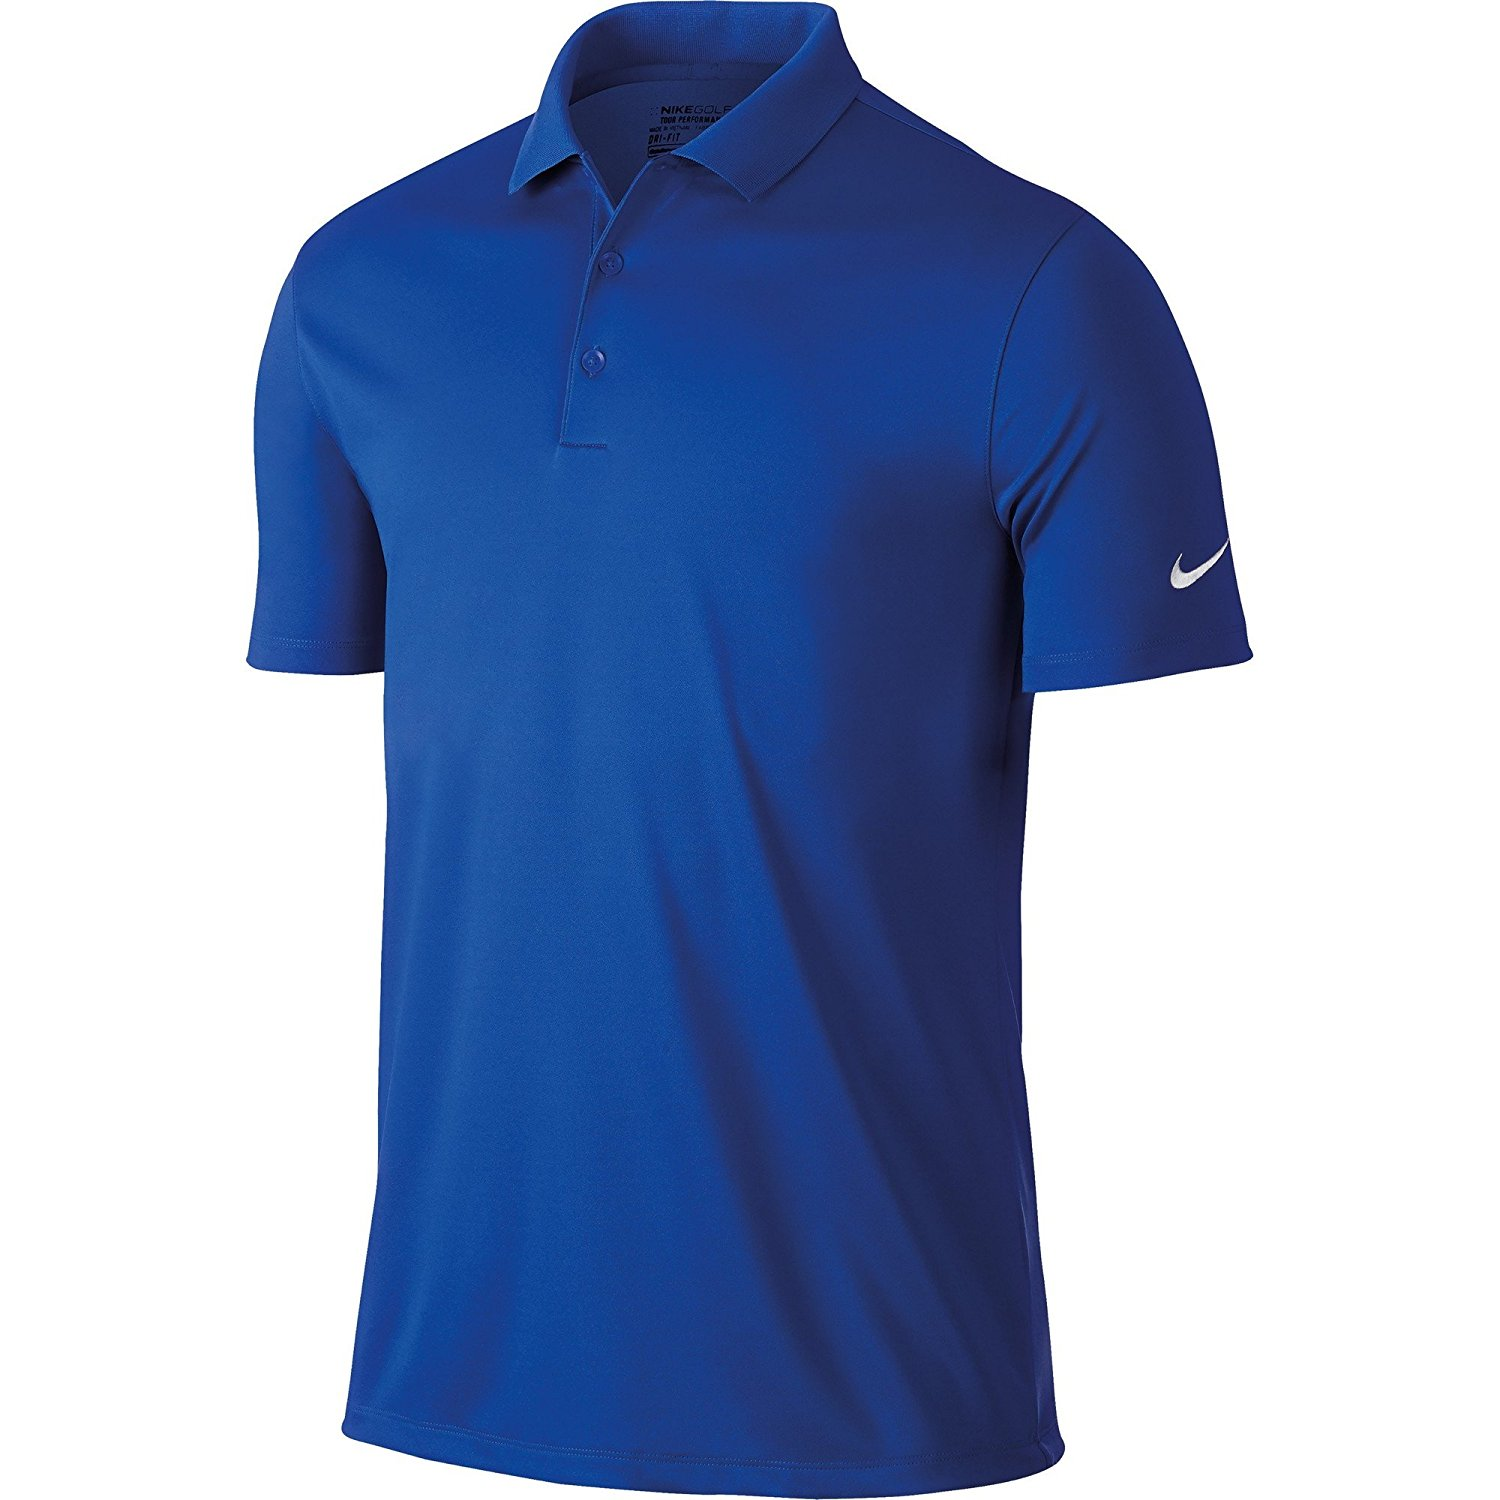 88856223f Top 10 Best Golf Clothes in 2019 Reviews - Top Best Pro Reviews